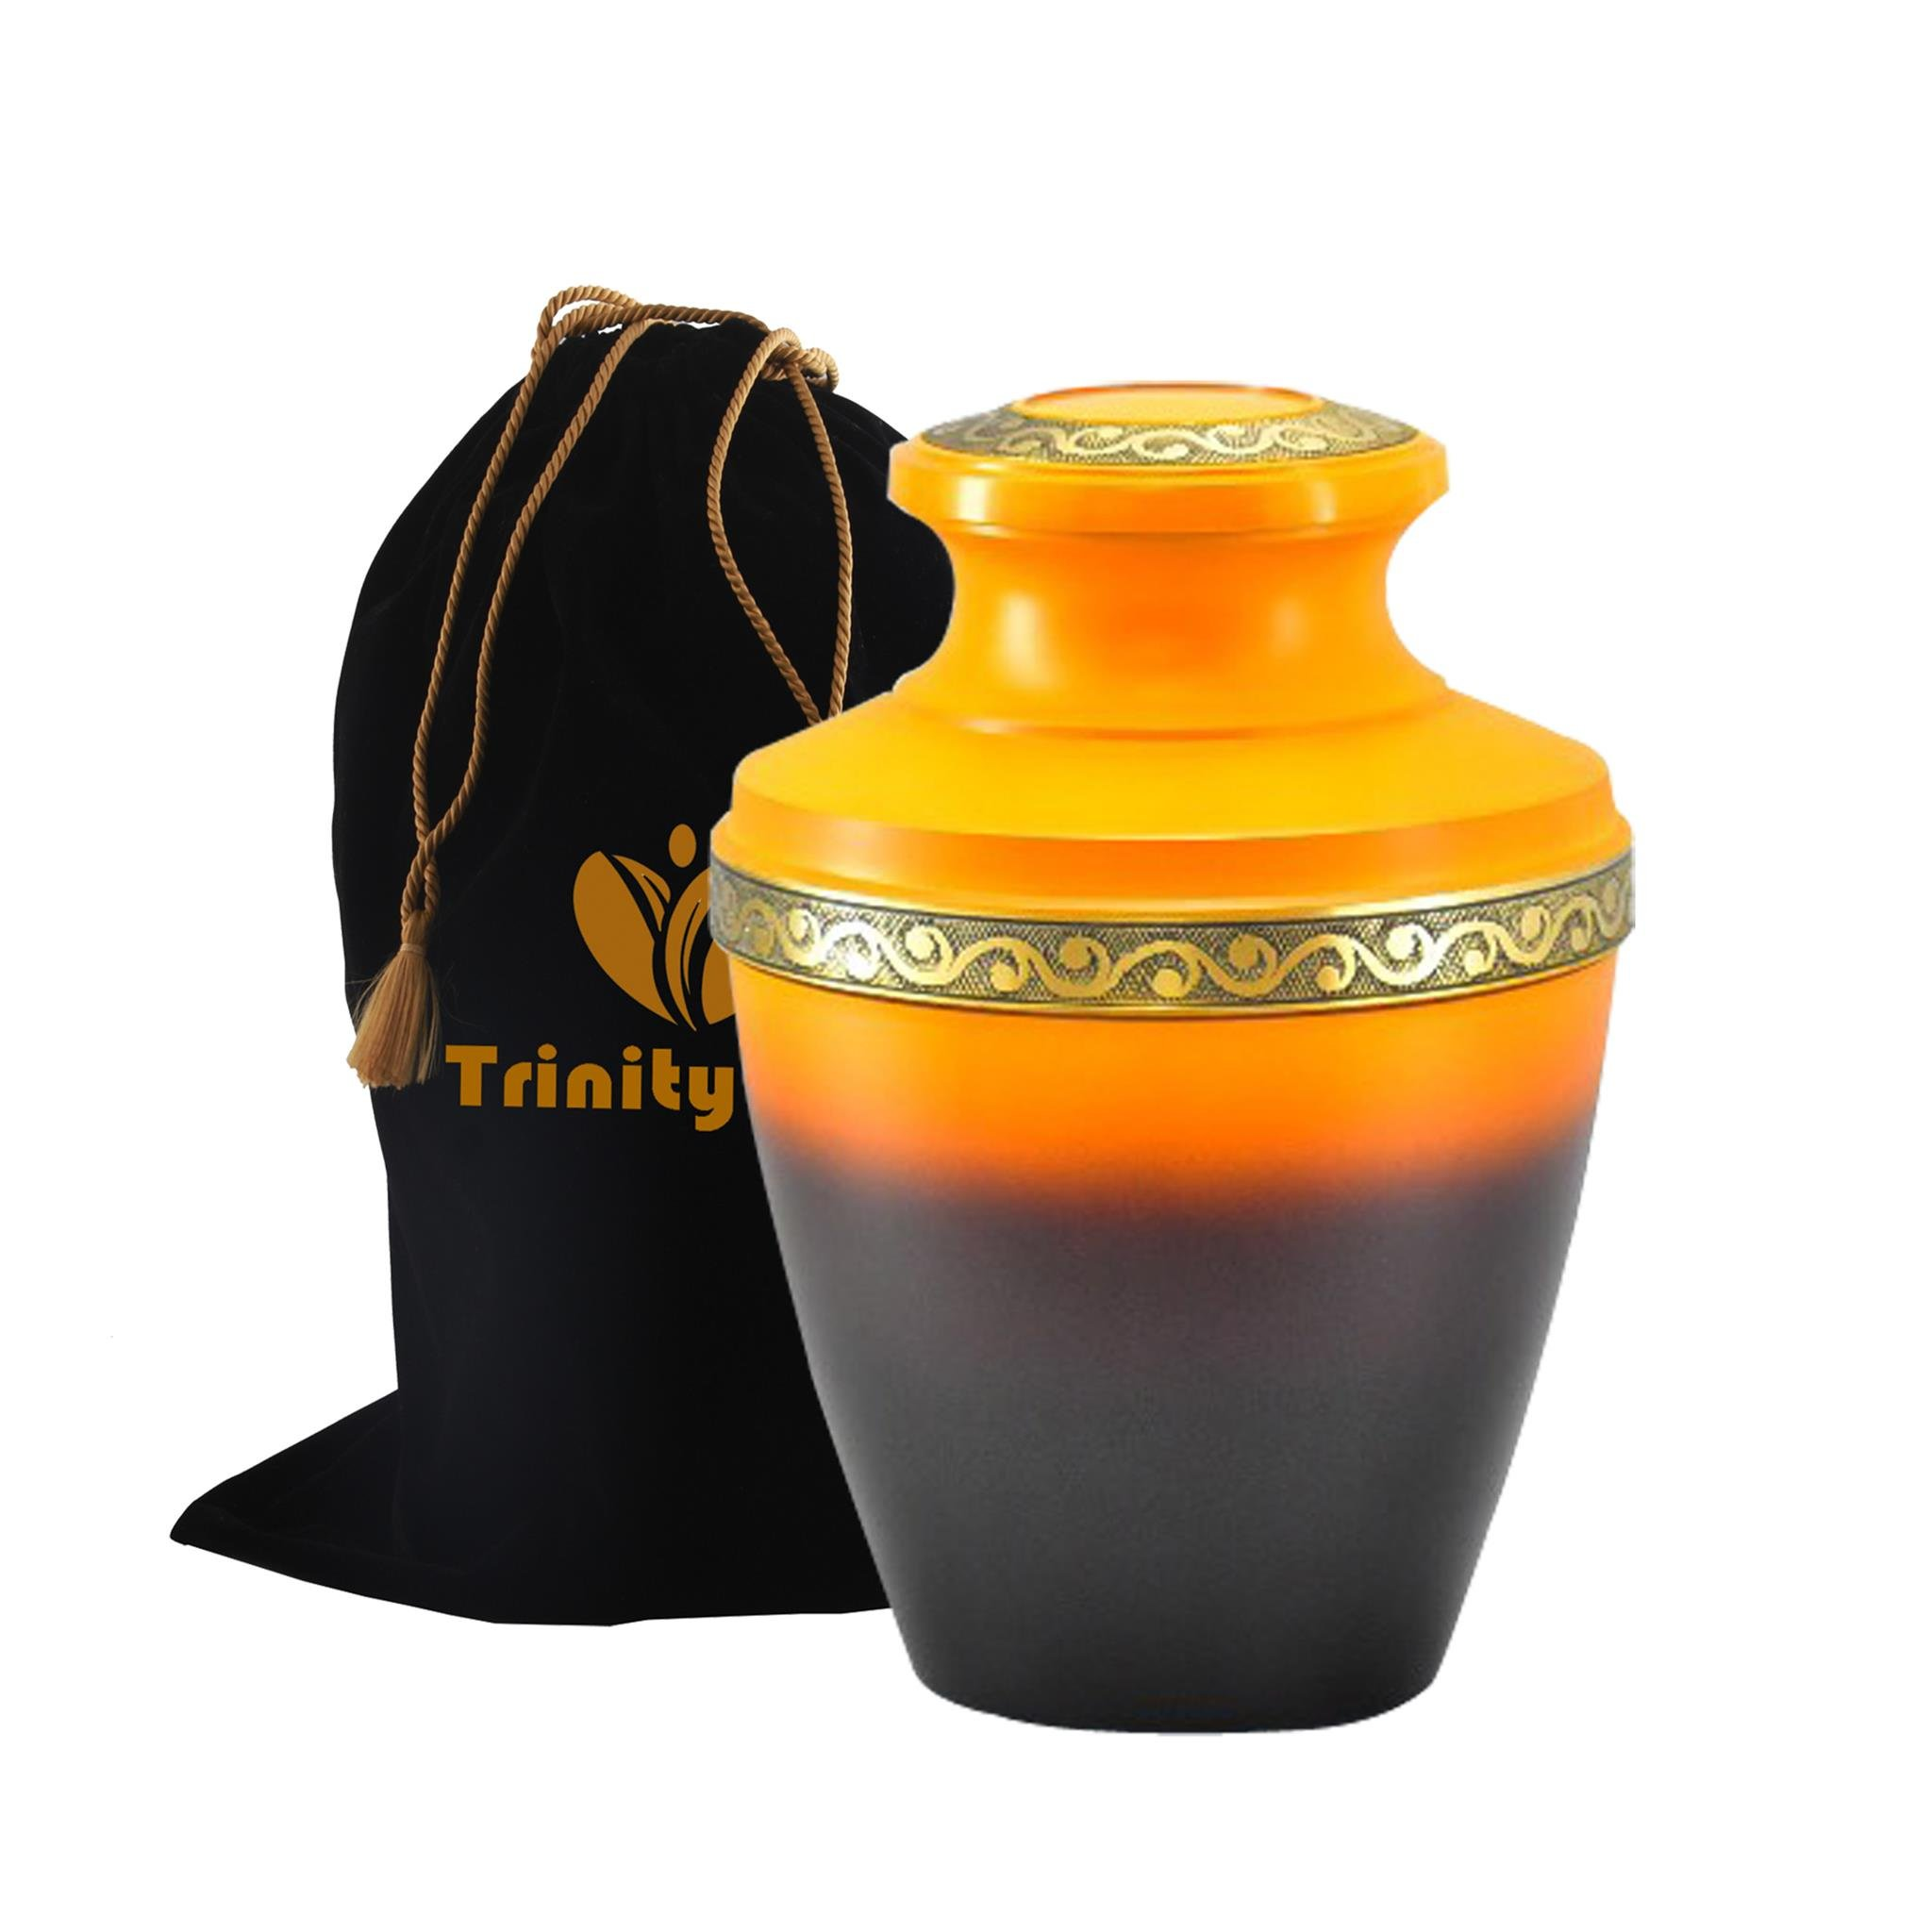 Golden Sunset Brass Cremation Urn - Beautifully Handcrafted Adult Funeral Urn - Solid Brass Funeral Urn - Affordable Urn for Human Ashes with Free Velvet Bag by Trinityurns